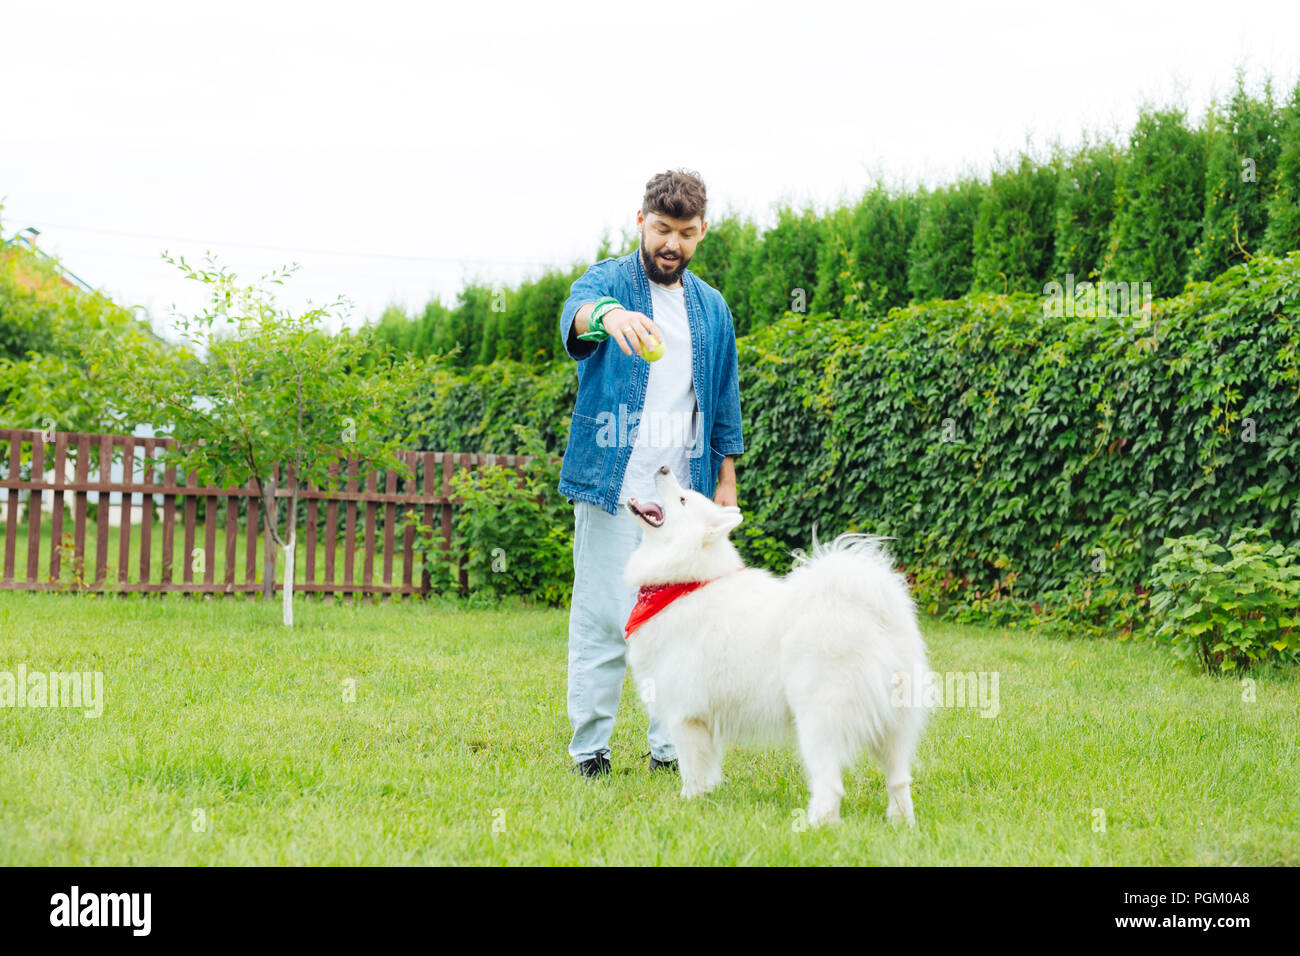 Stylish man wearing jeans jacket playing with white husky - Stock Image